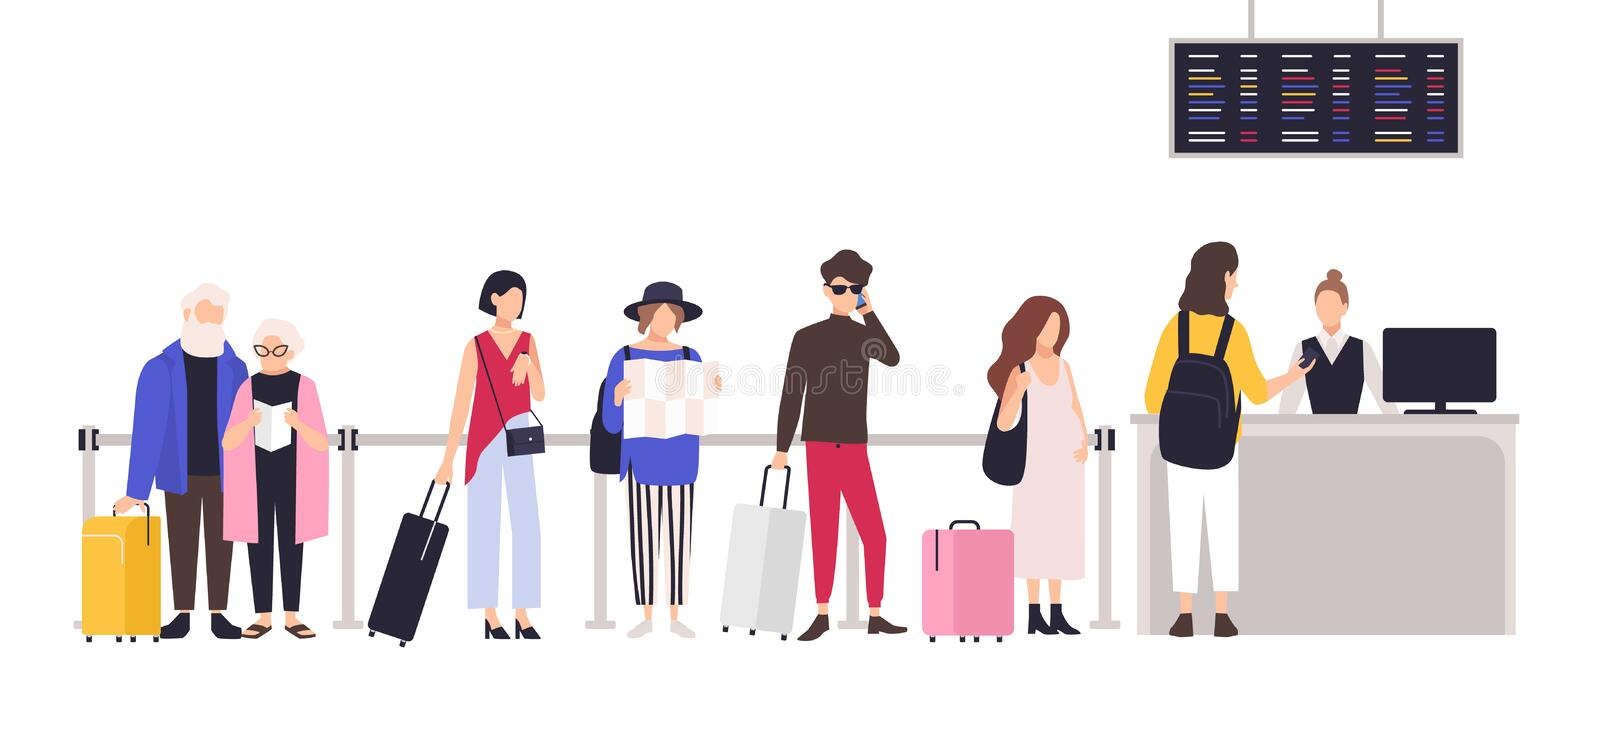 People standing in queue or line to check-in desk in order to register for flight. Men and women with baggage waiting. For plane departure at airport. Colored vector illustration